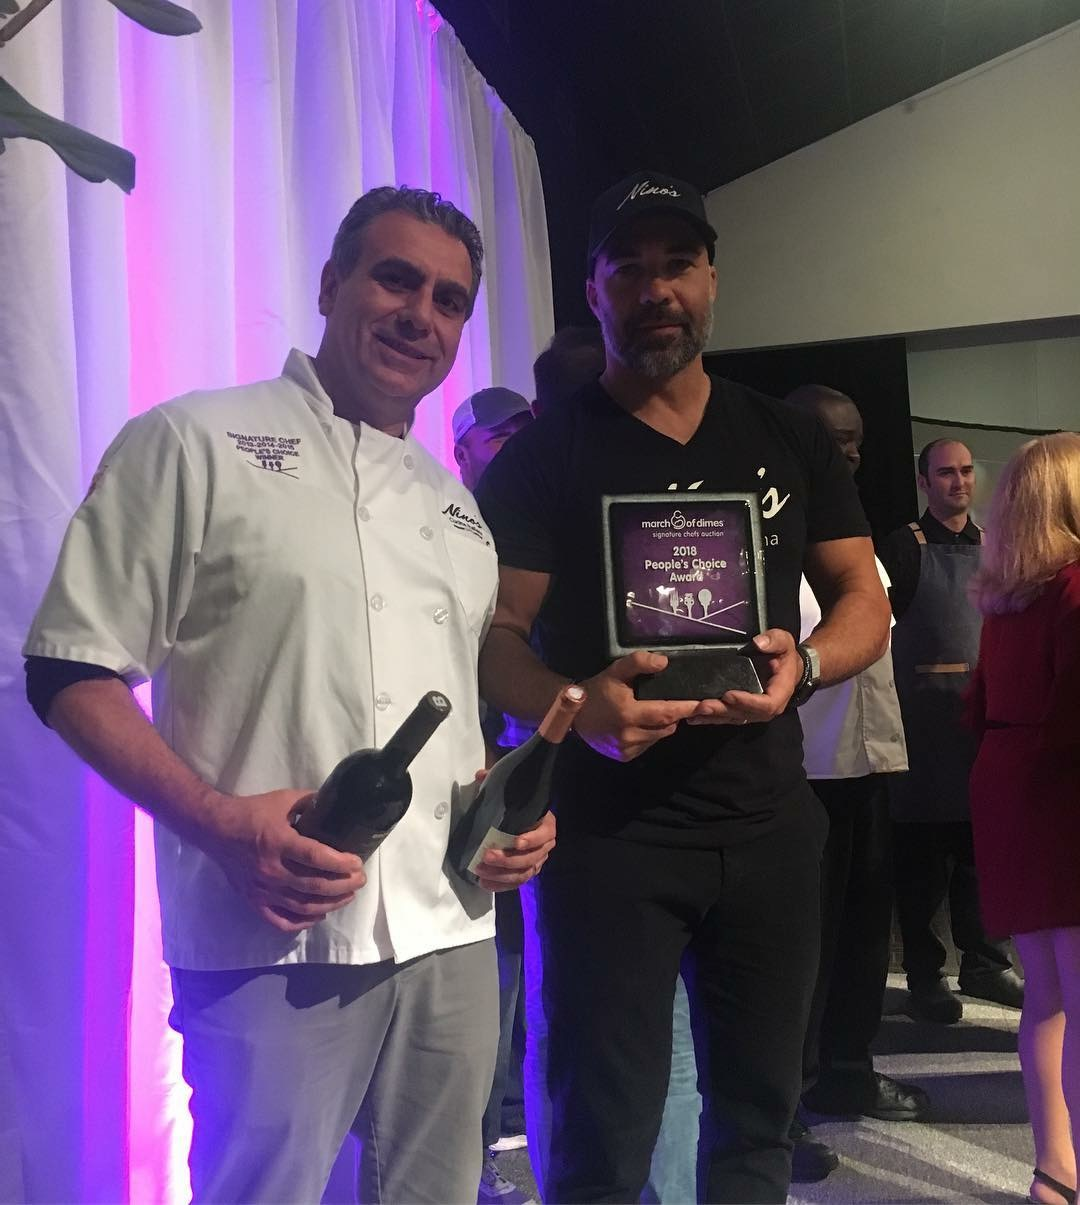 """Pietro Passalacqua and Massimo Mannino accepting the March of Dimes """"People's Choice"""" Award."""